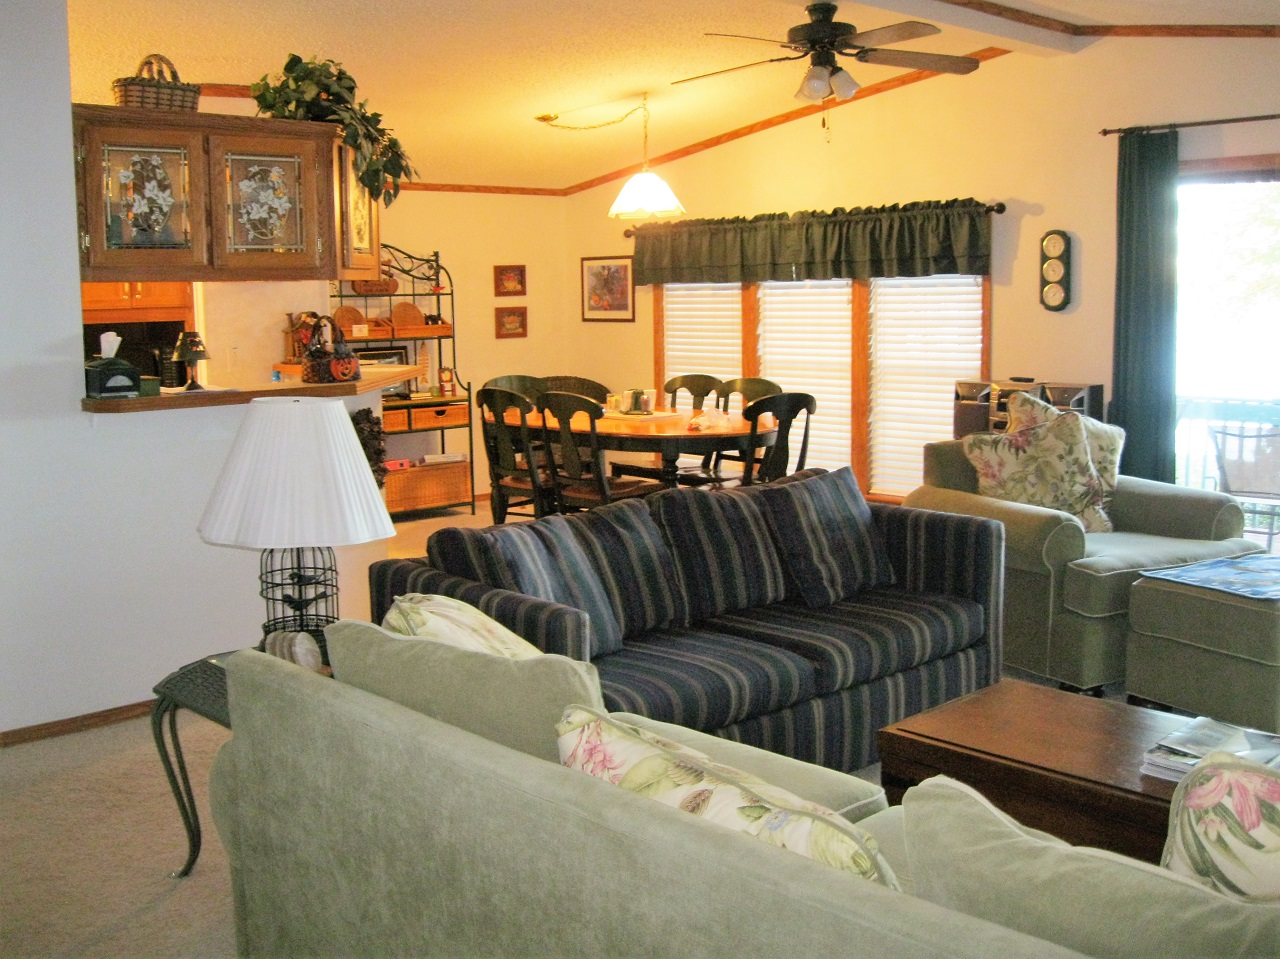 8 Seminole living and dining